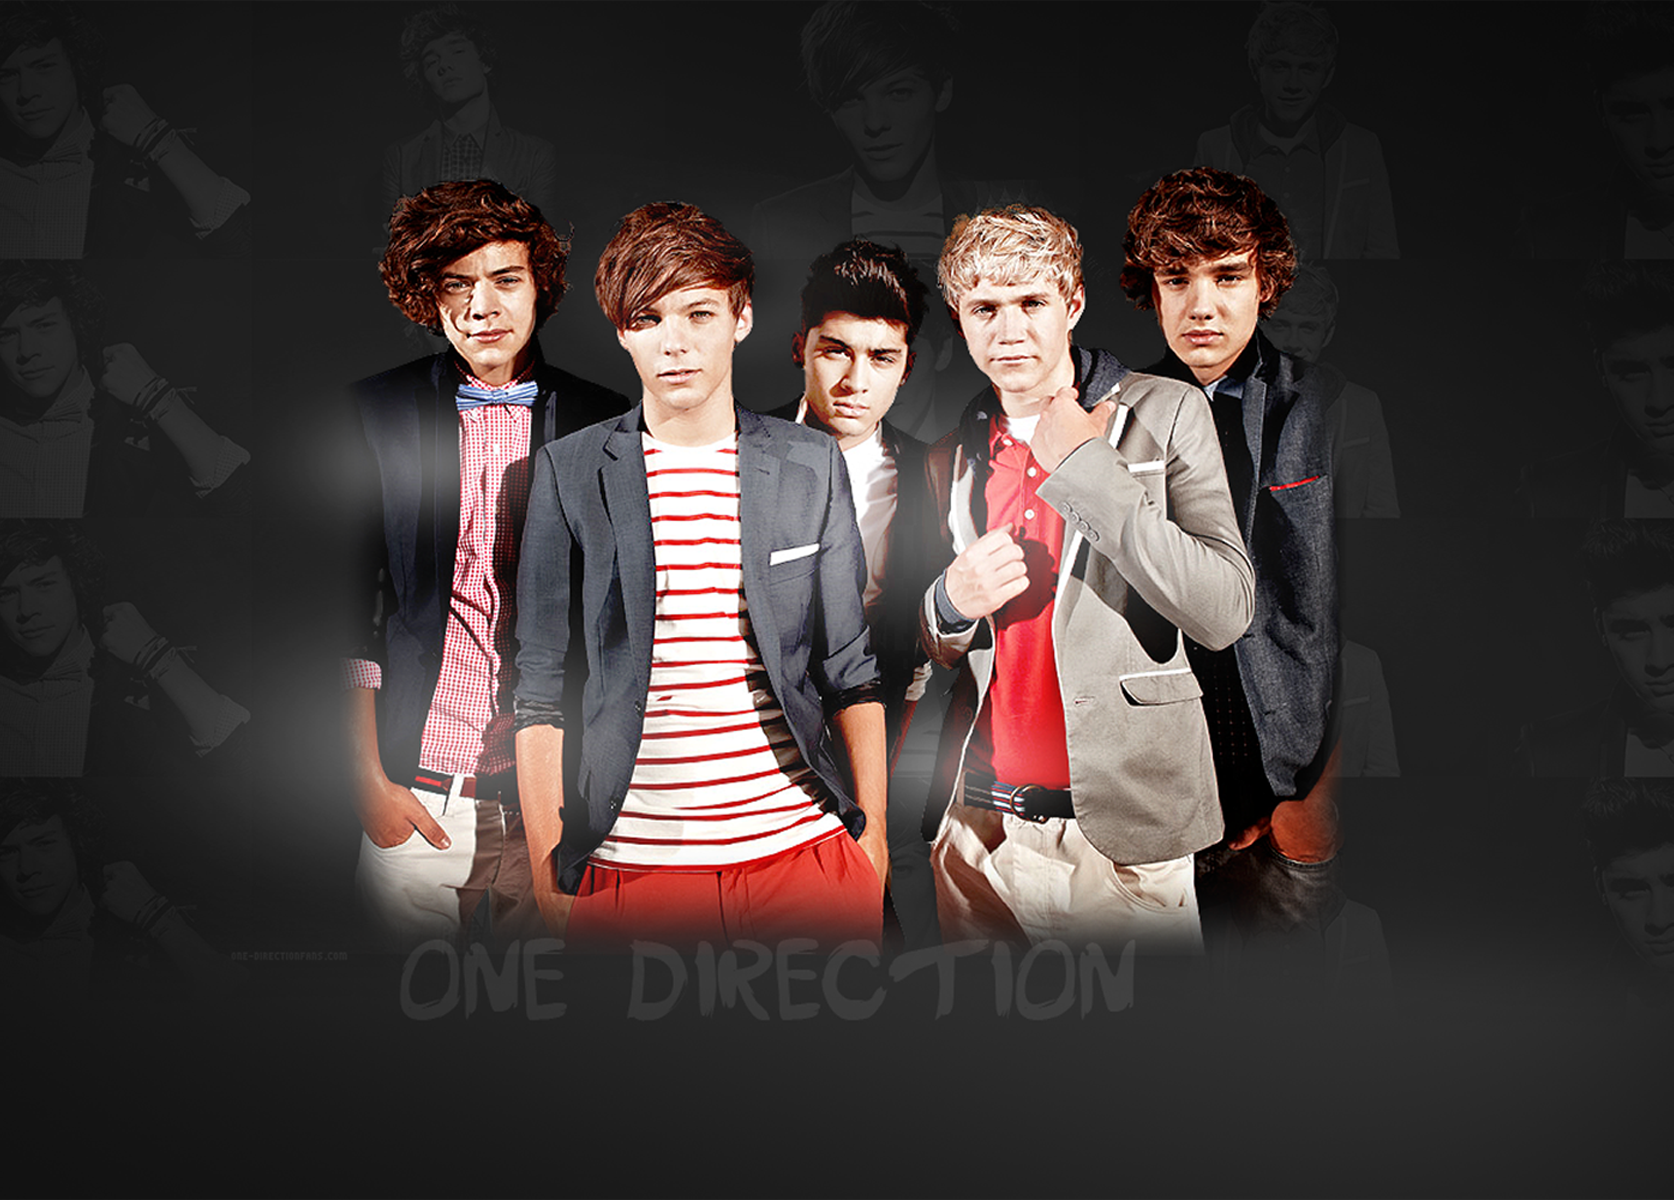 Image detail for One Direction Boy Band Wallpaper One